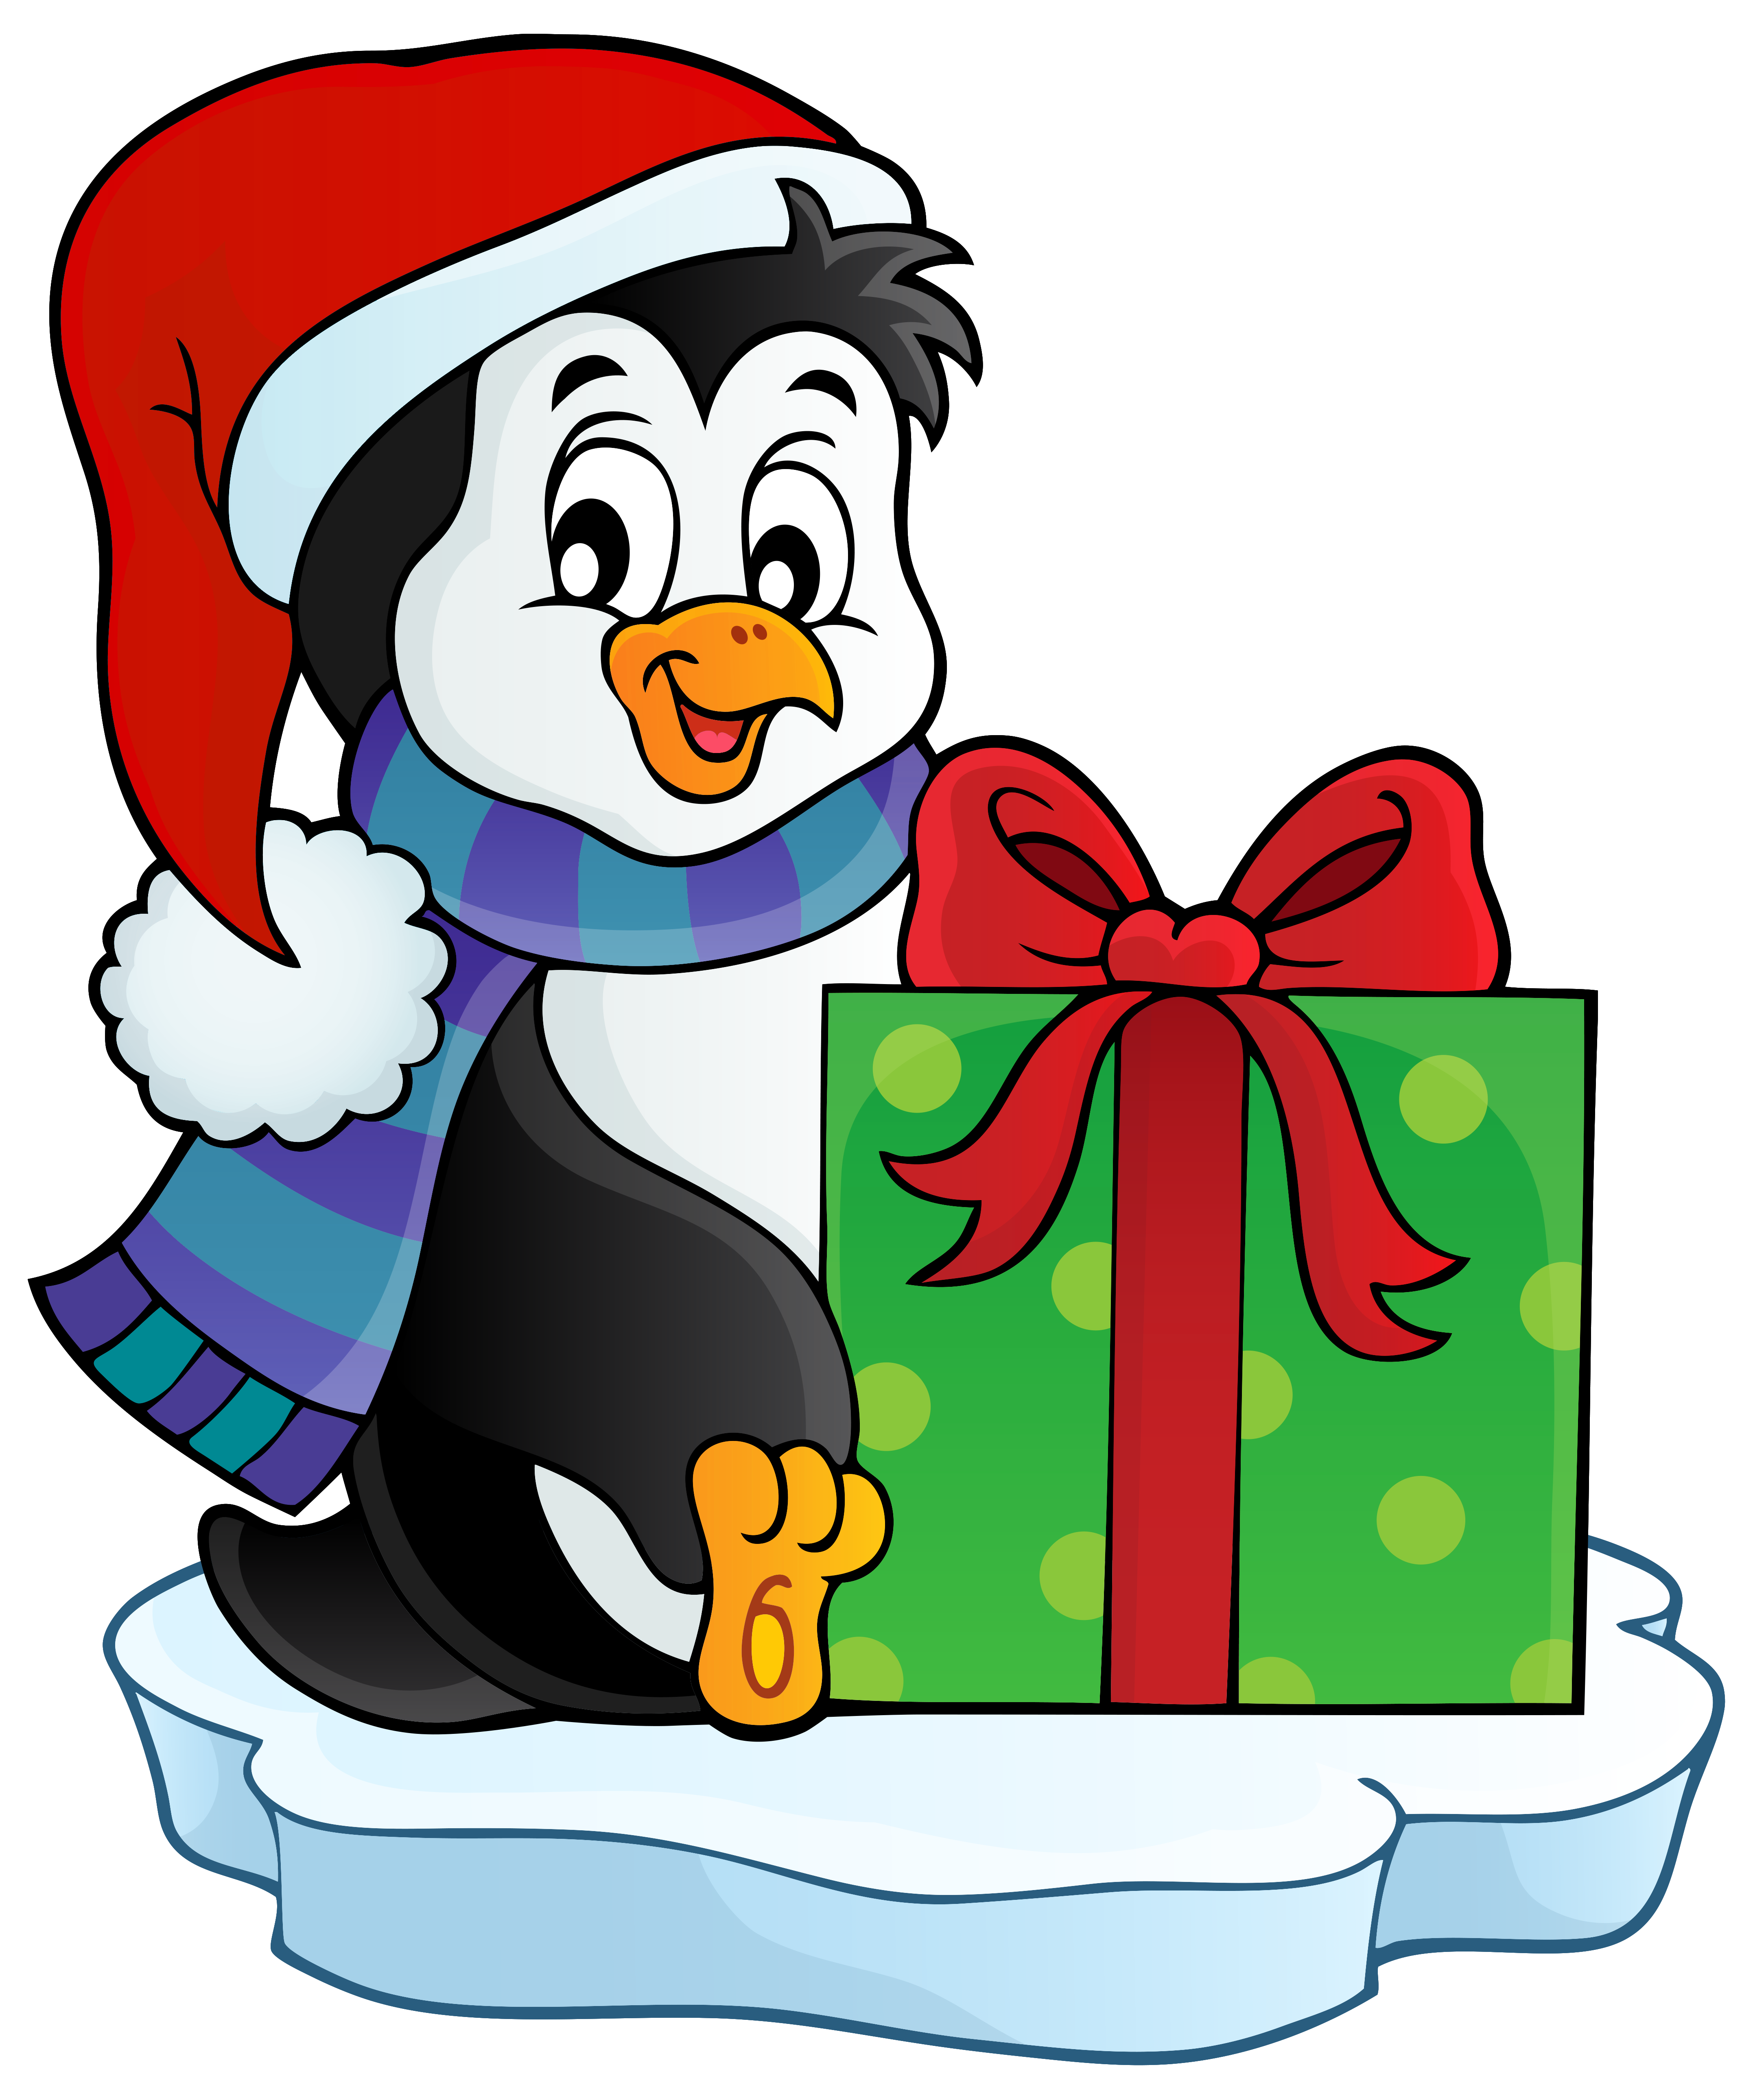 snowman clipart xmas snowman xmas transparent free for download on webstockreview 2020 webstockreview